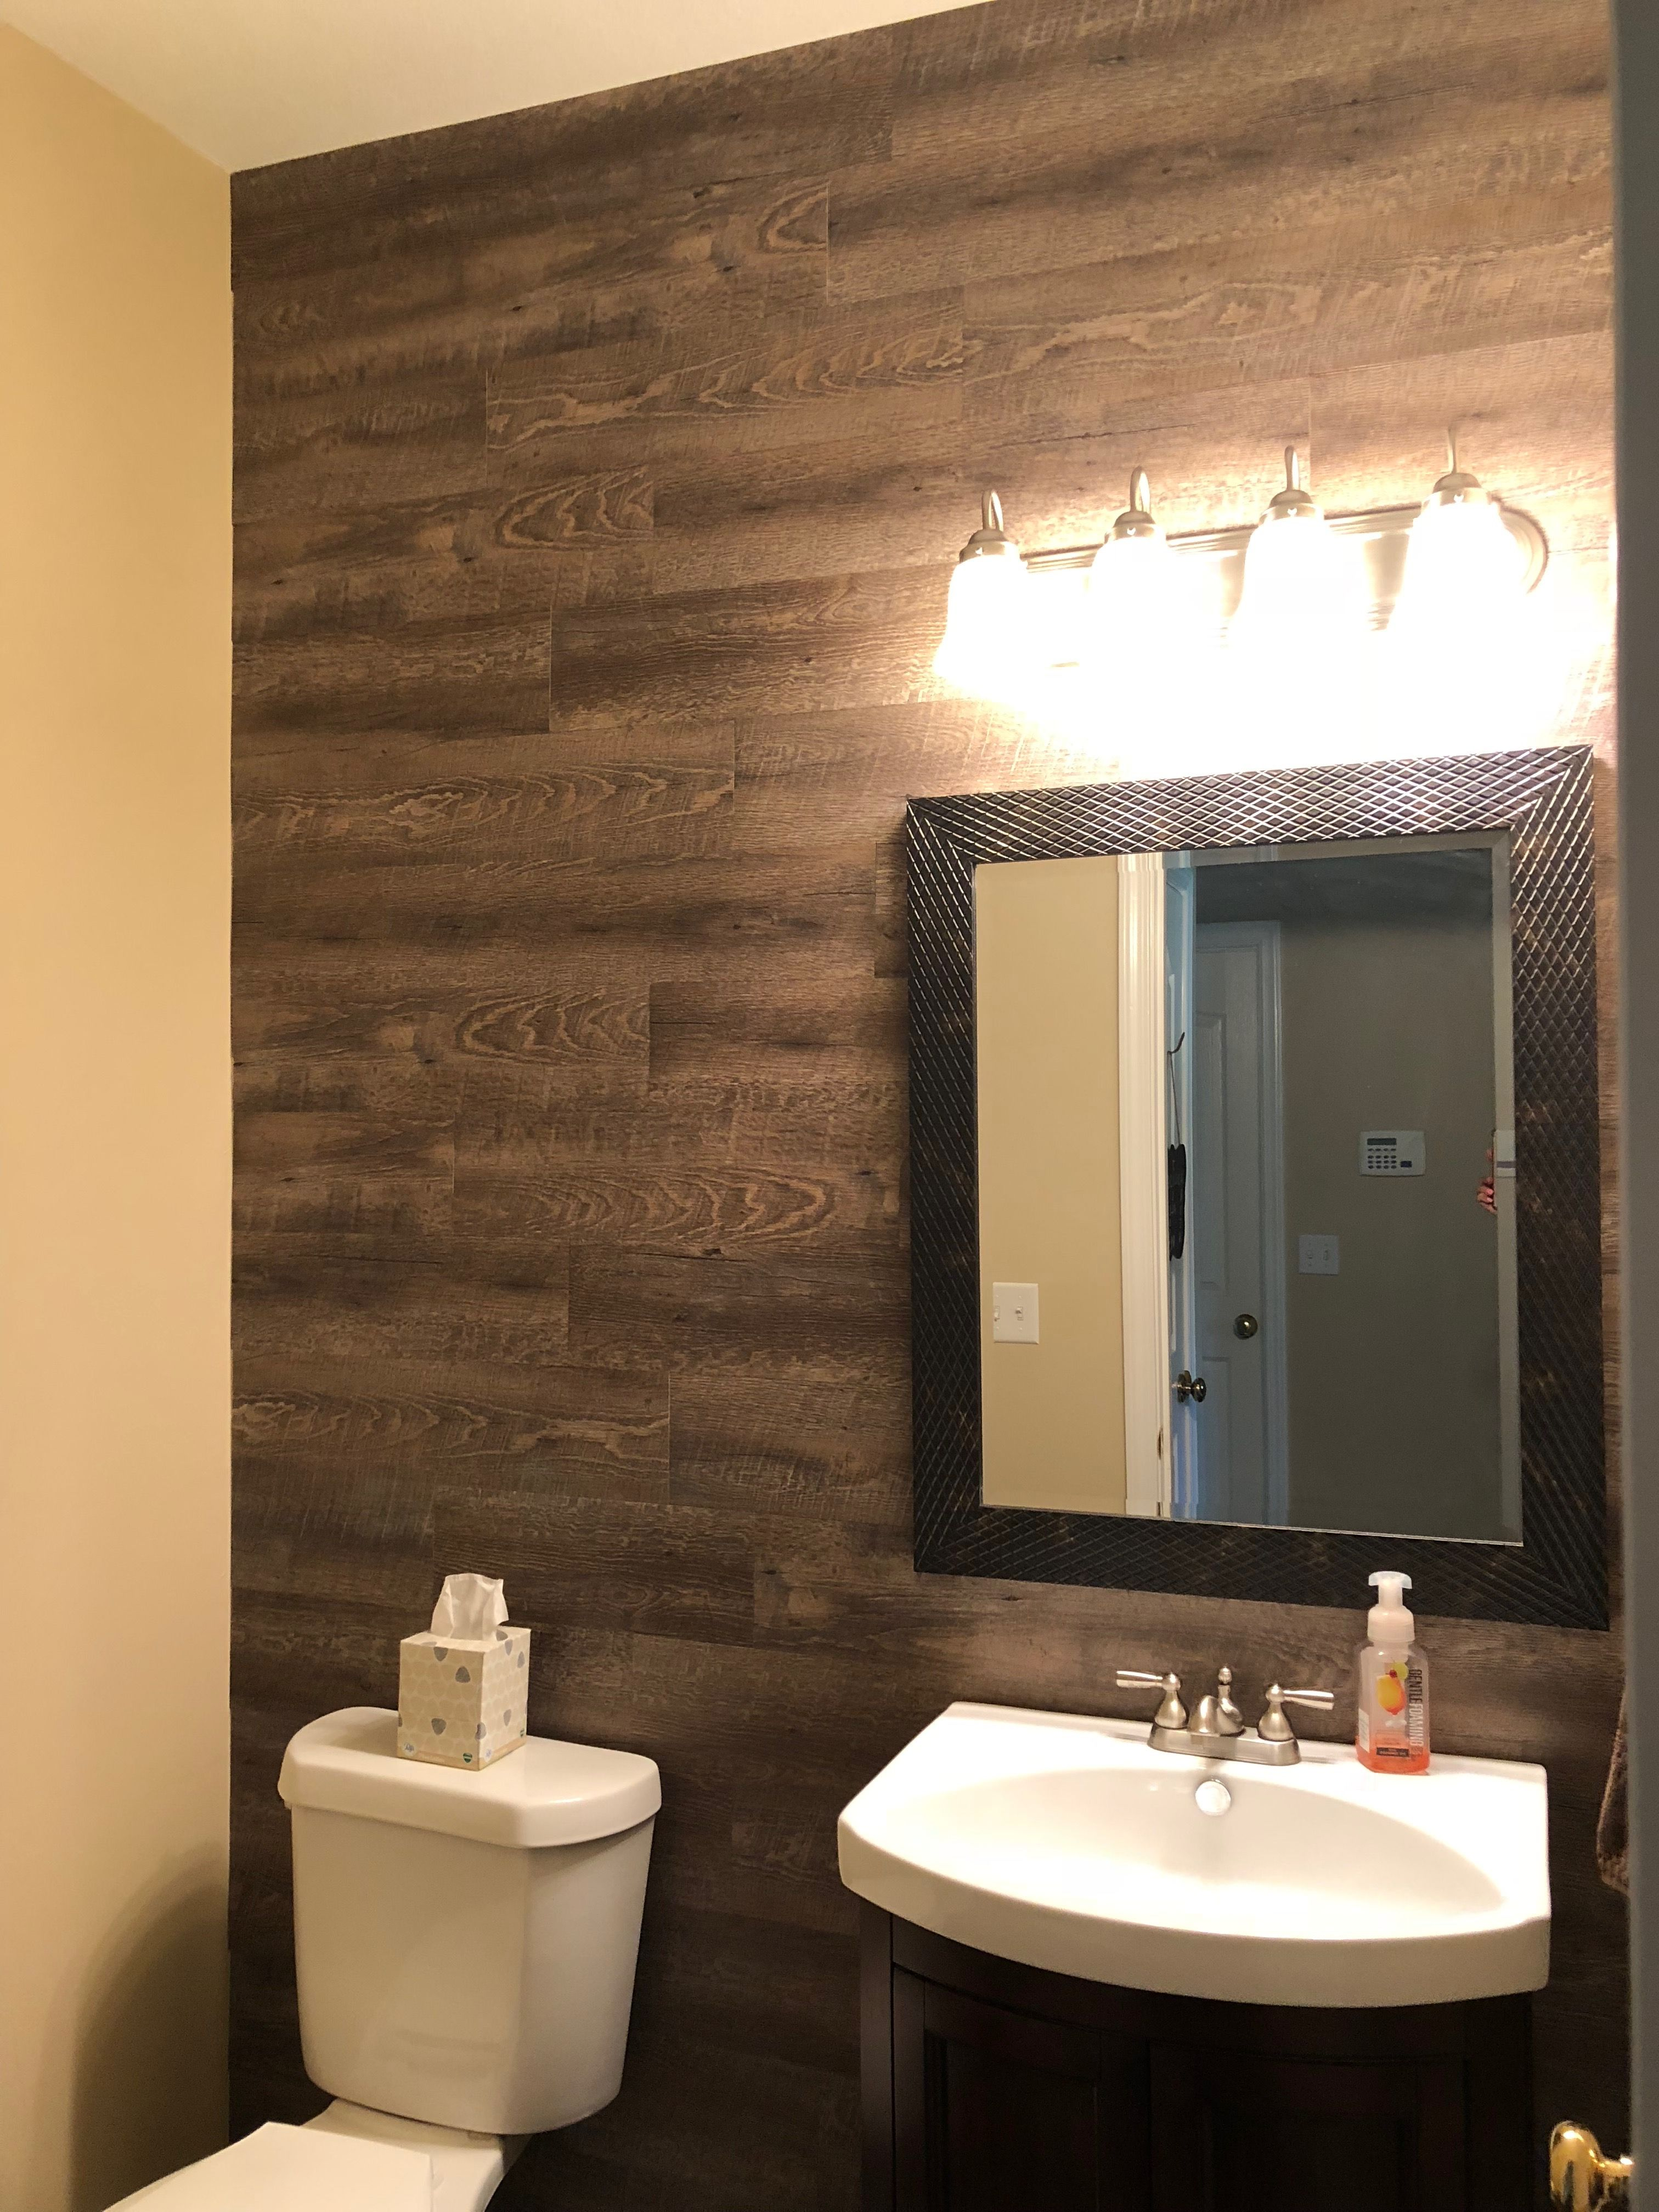 Vinyl plank wood wall using Peel and Stick fromLowe's